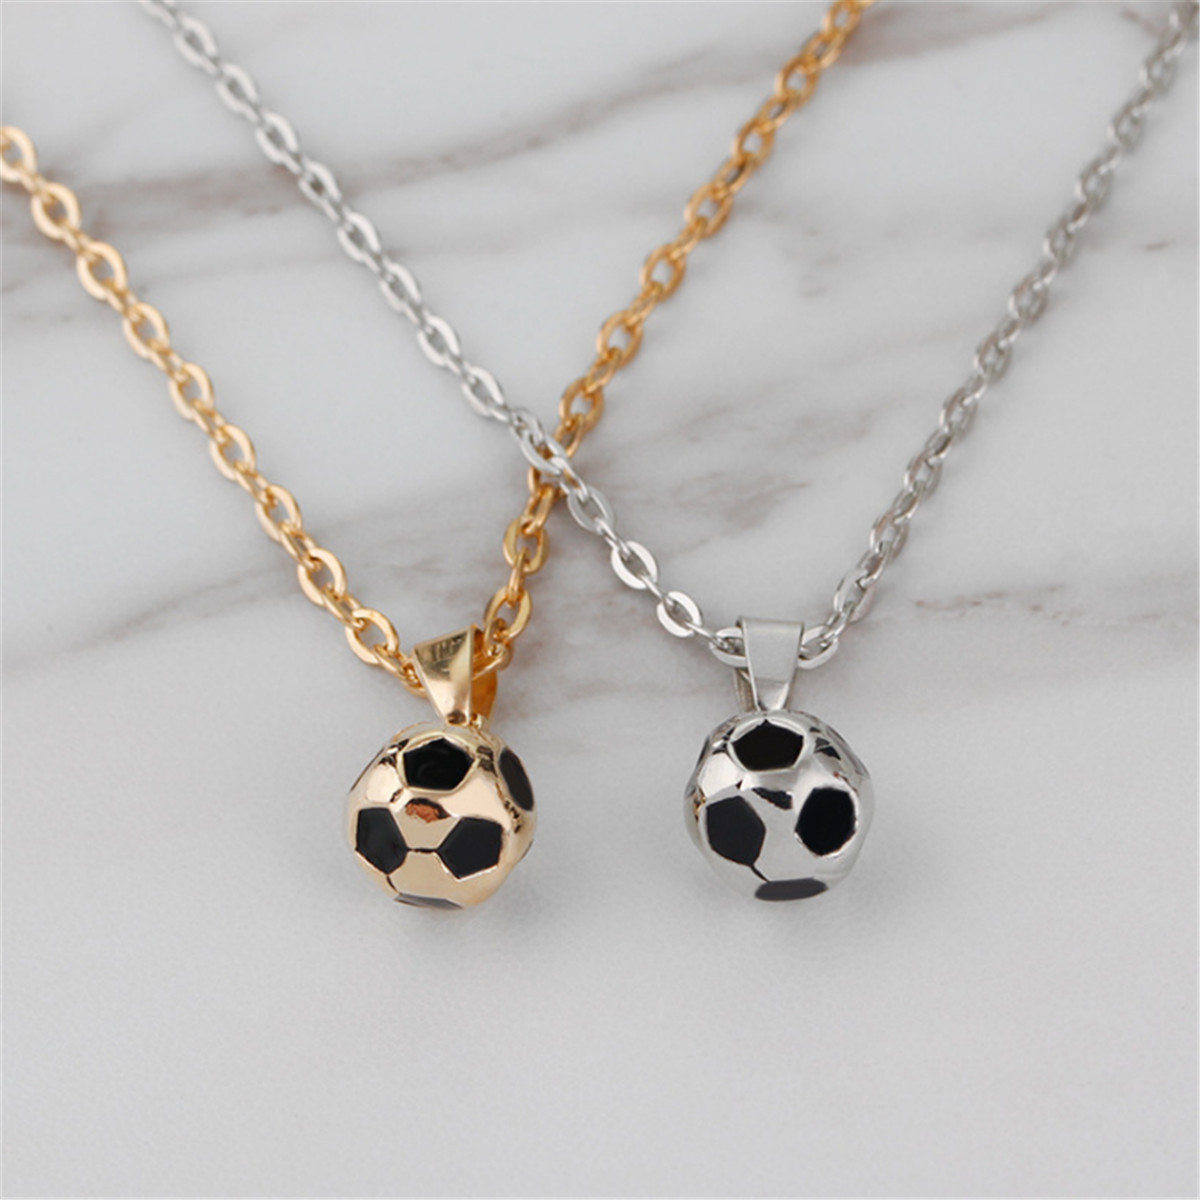 Mens fashion football pendant gold black sports necklace soccer mens fashion football pendant gold black sports necklace soccer ball dreamed aloadofball Image collections